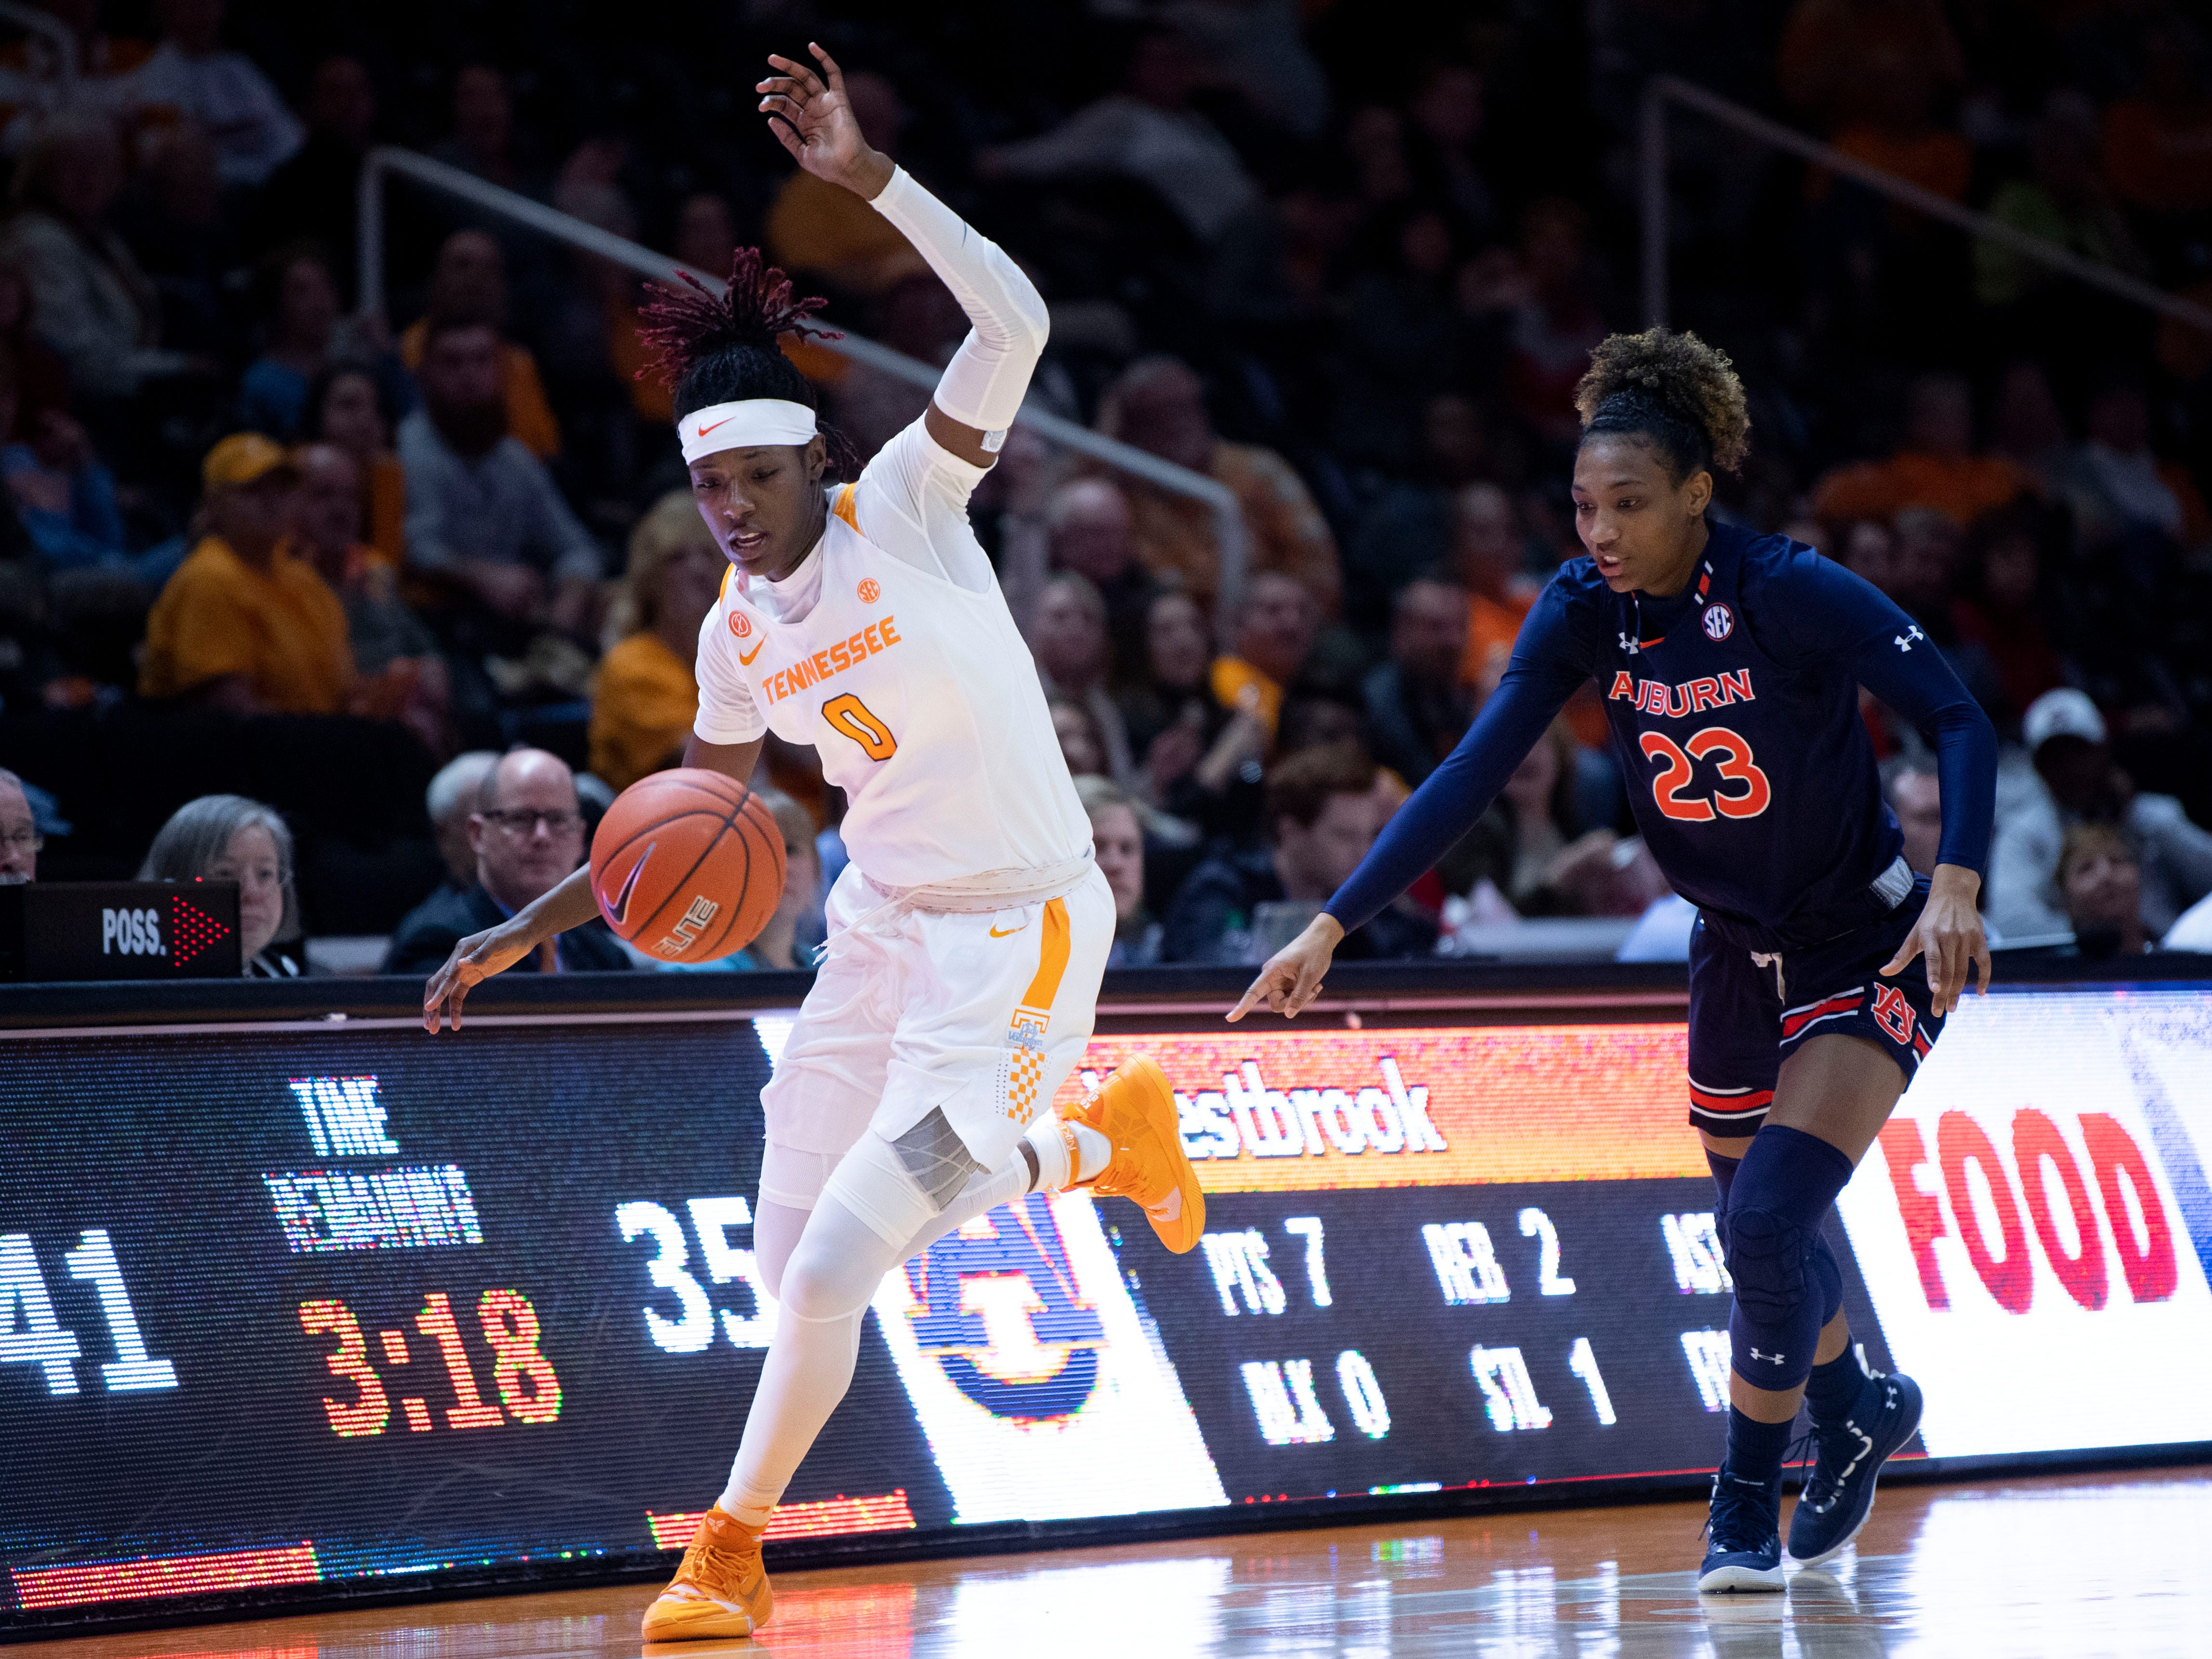 Tennessee's Rennia Davis (0) chases the ball after stealing it from Auburn's Crystal Primm (23) on Thursday, February 14, 2019.